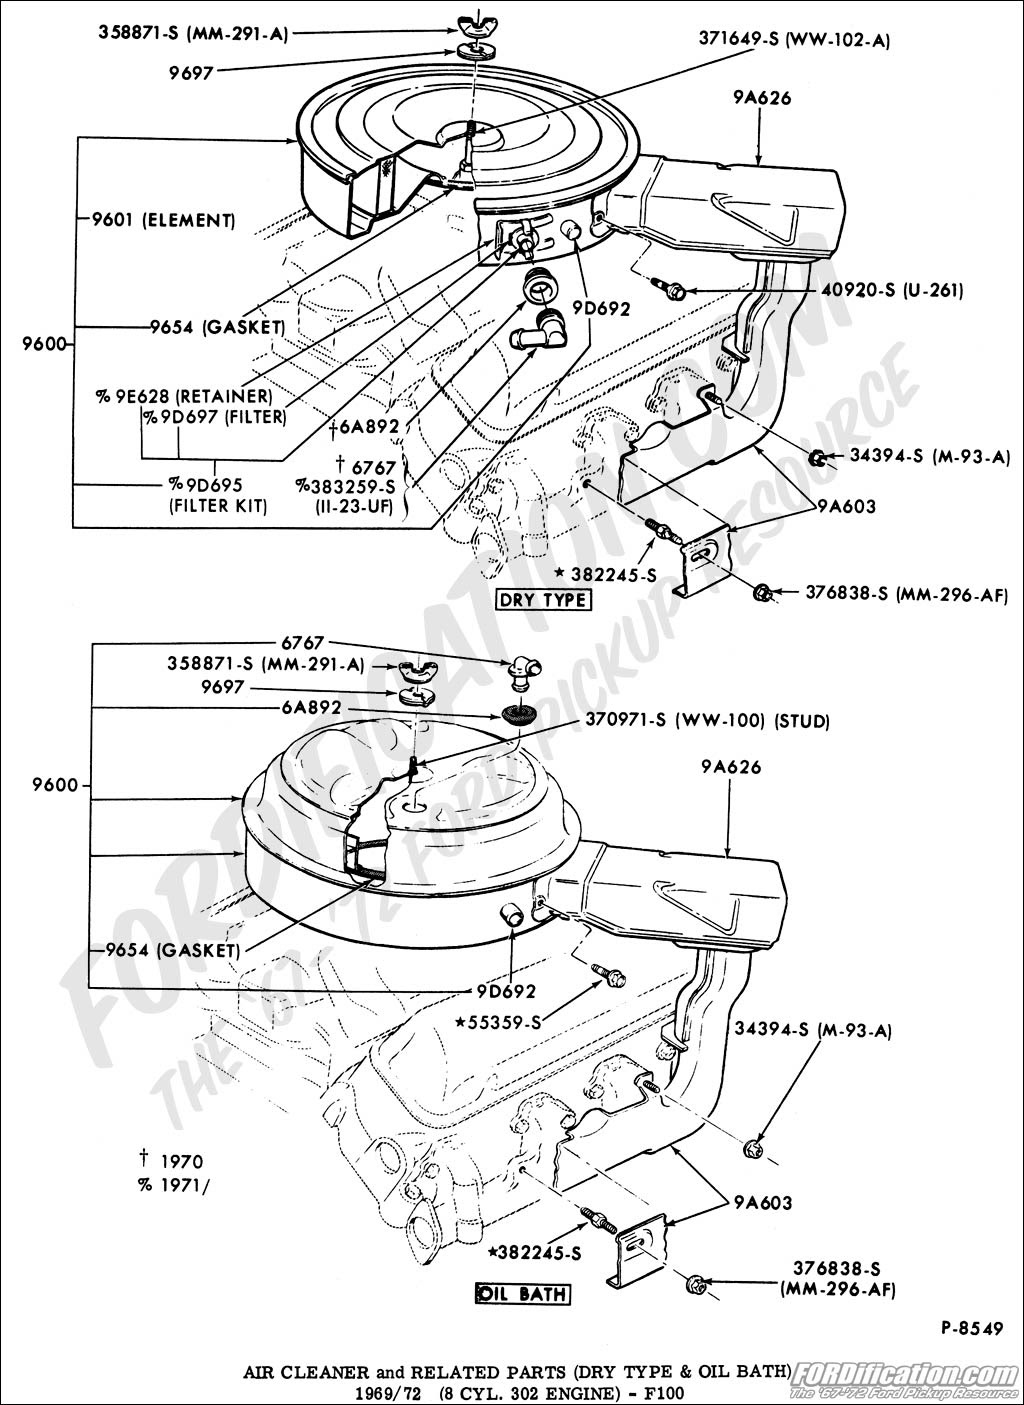 Ignition Wiring Diagram Ford 302 / 86 302 Ignition Control